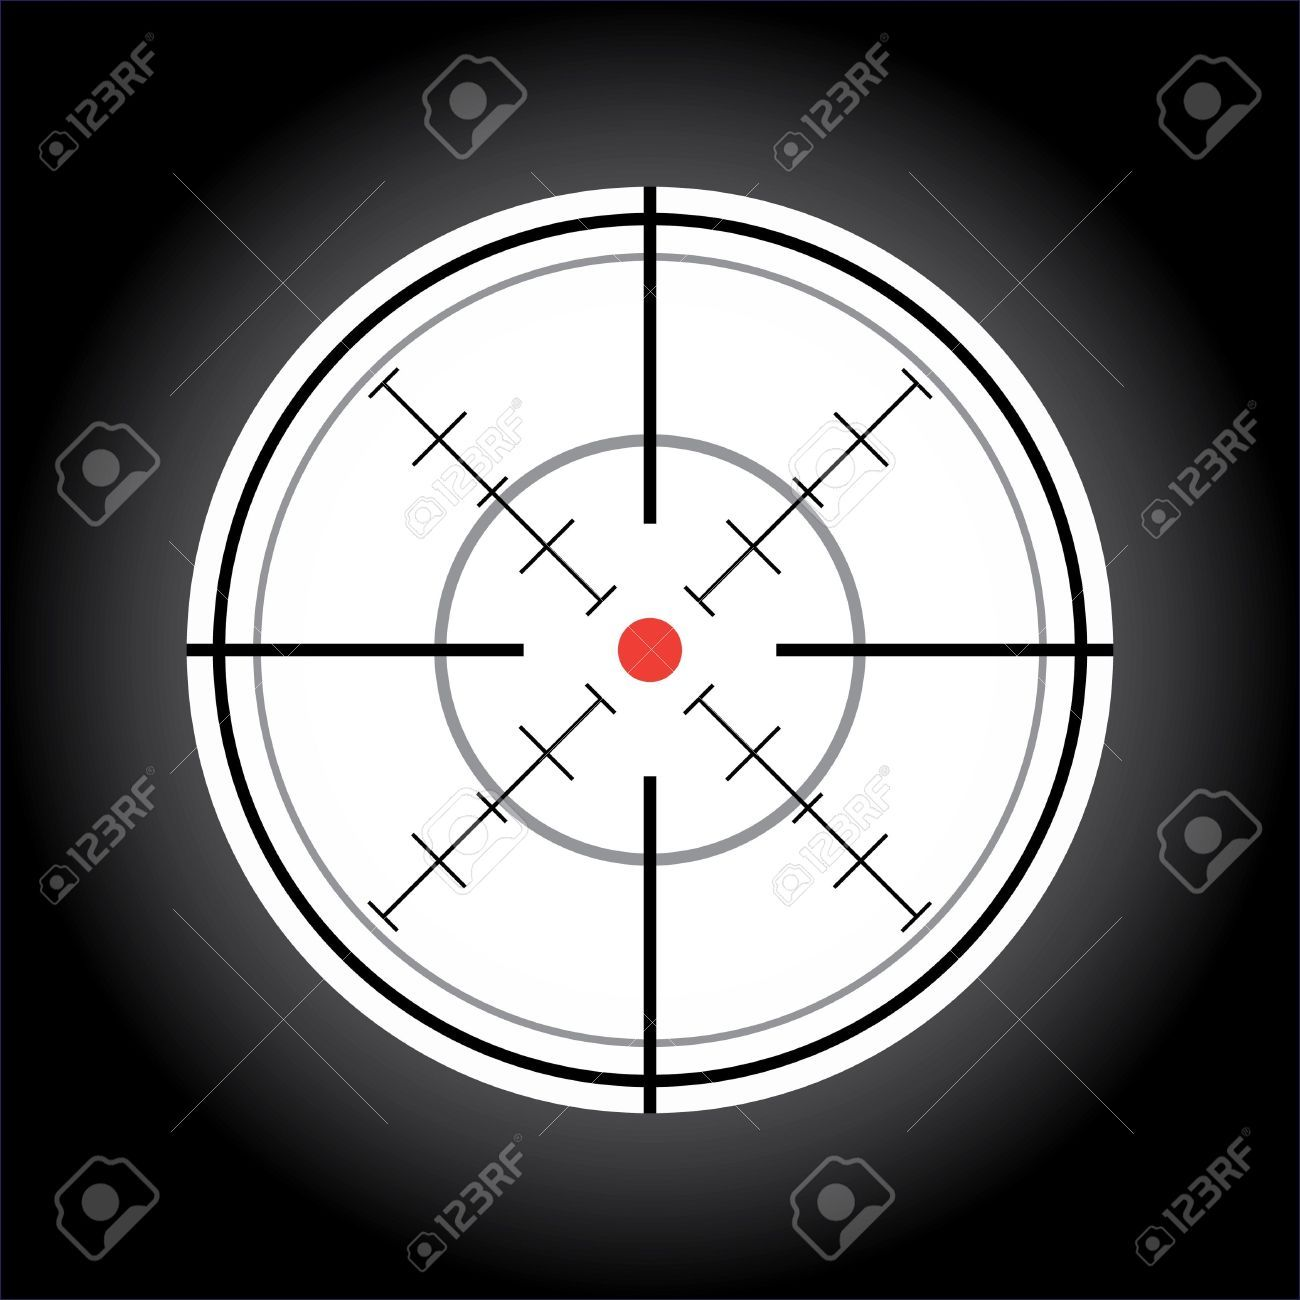 Crosshair With Red Dot Illustration Red Dots Illustration Red